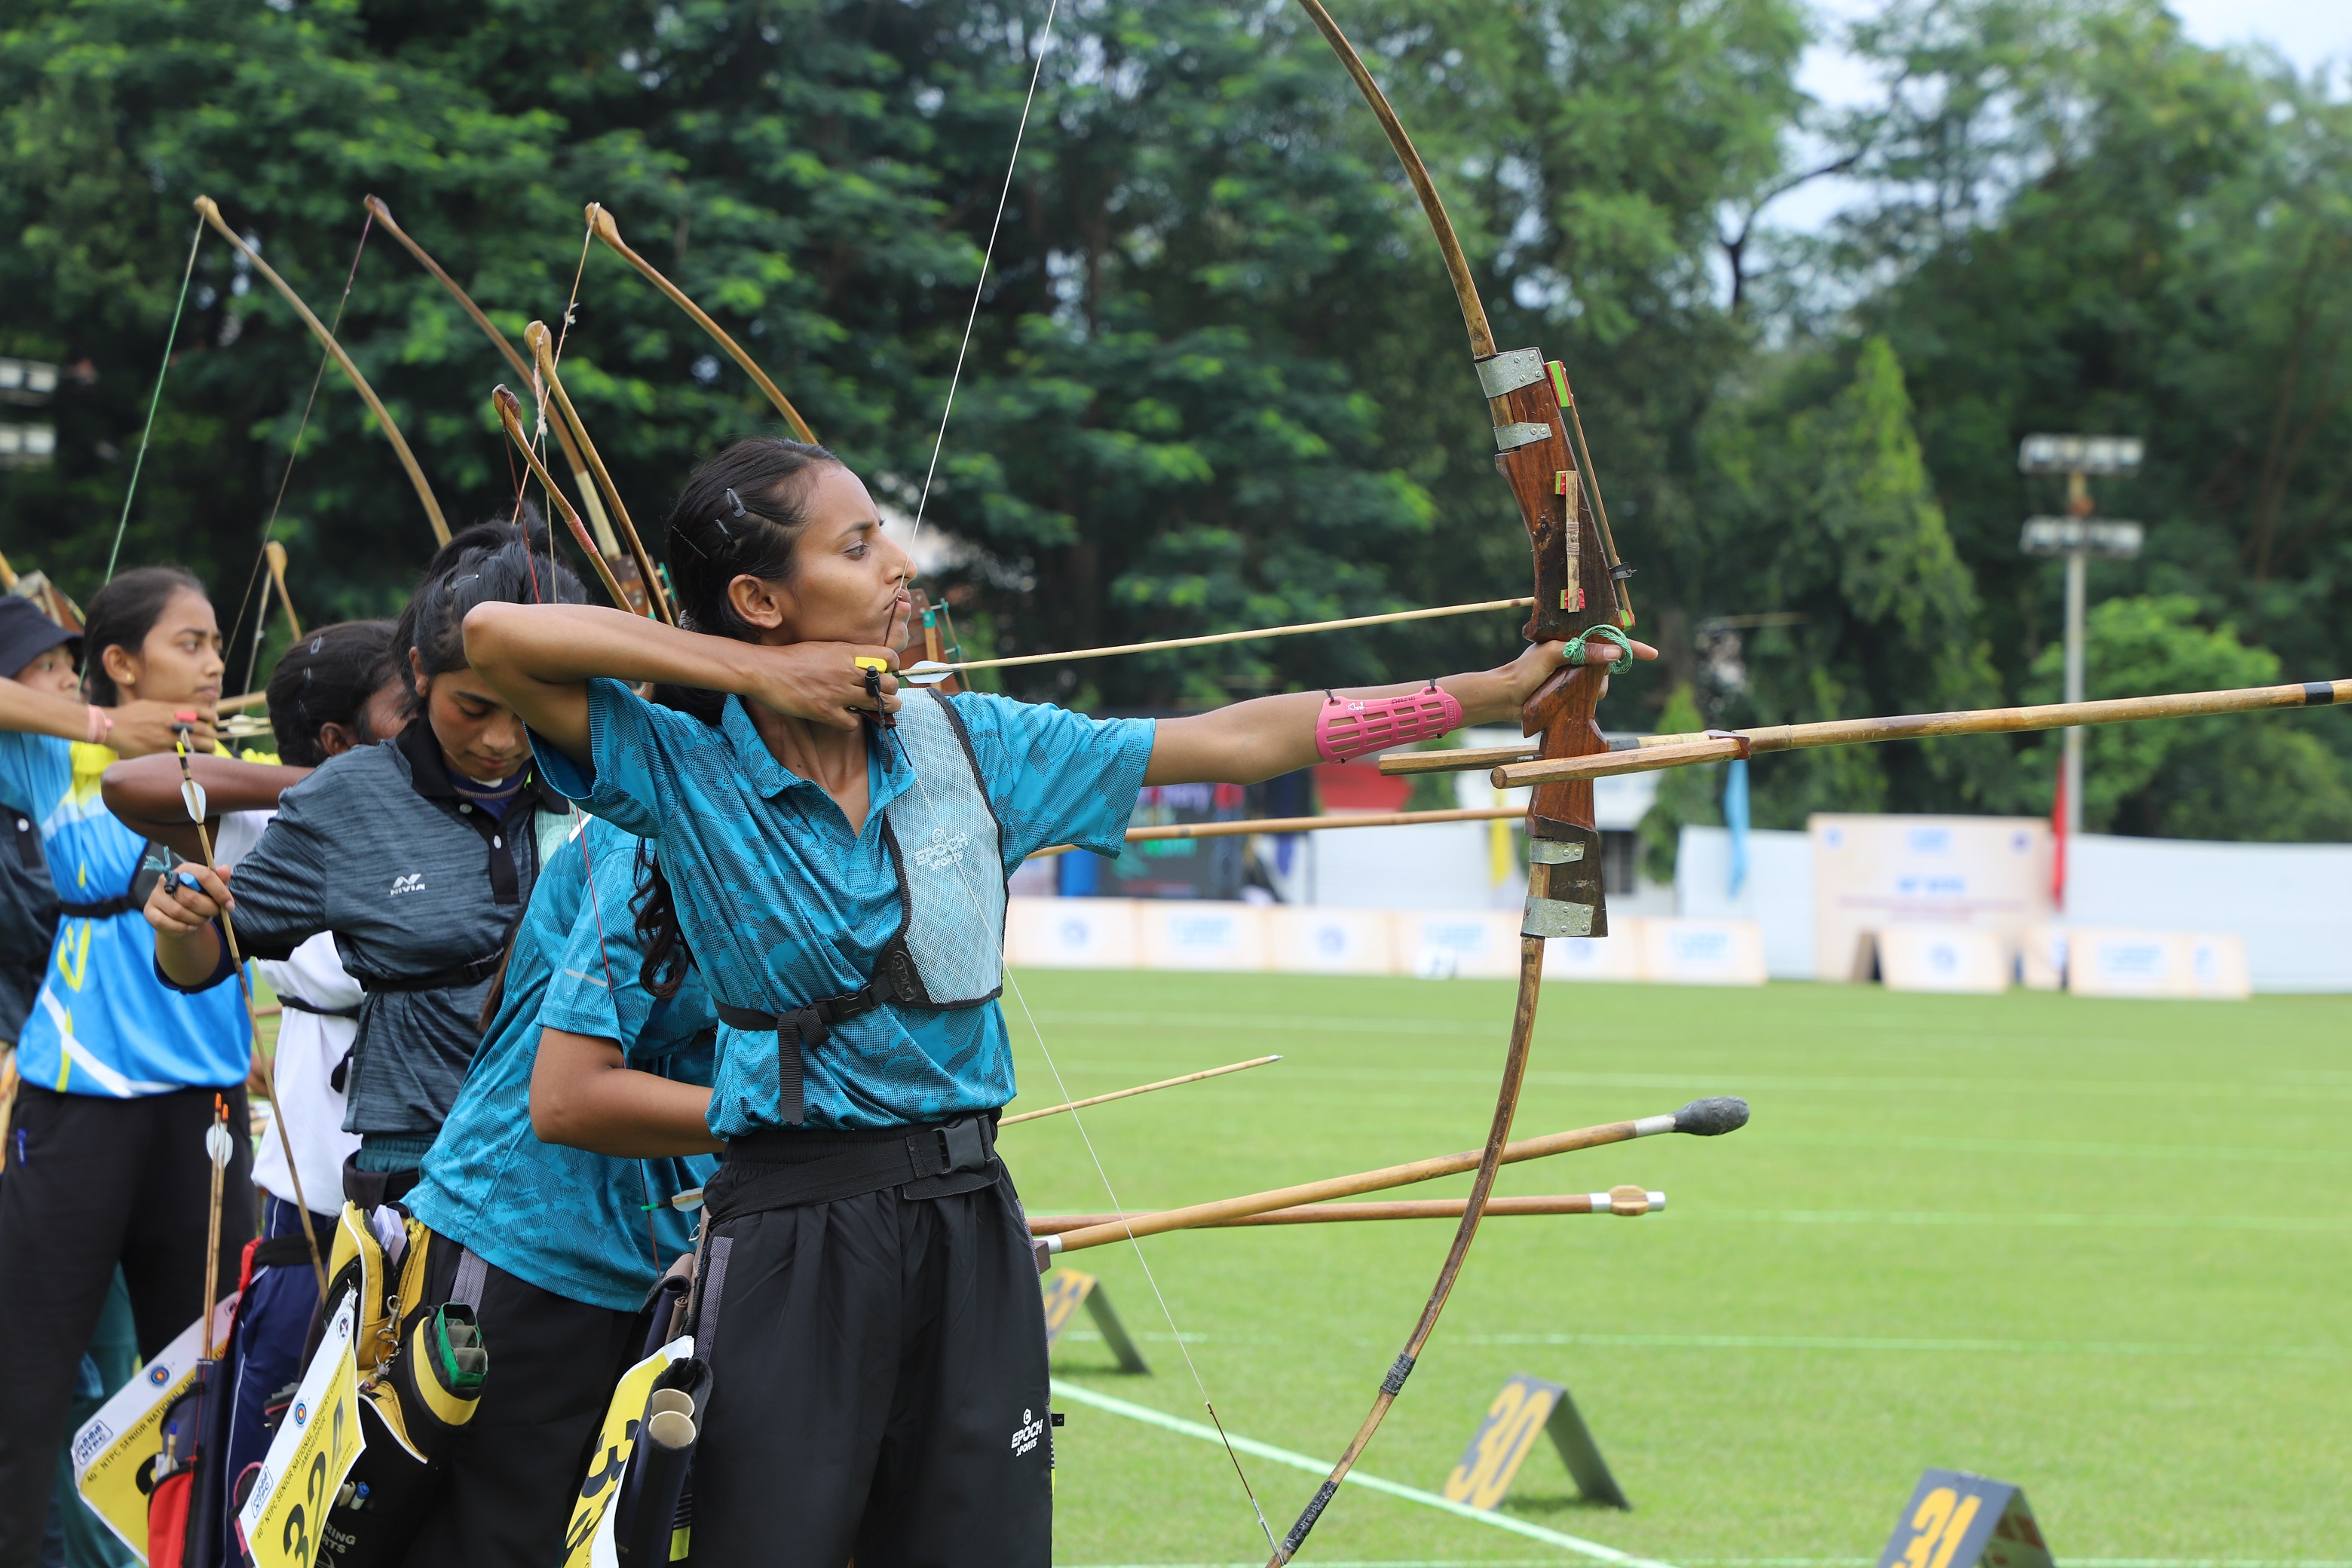 Players_in_action_during_archery_championship_2.JPG